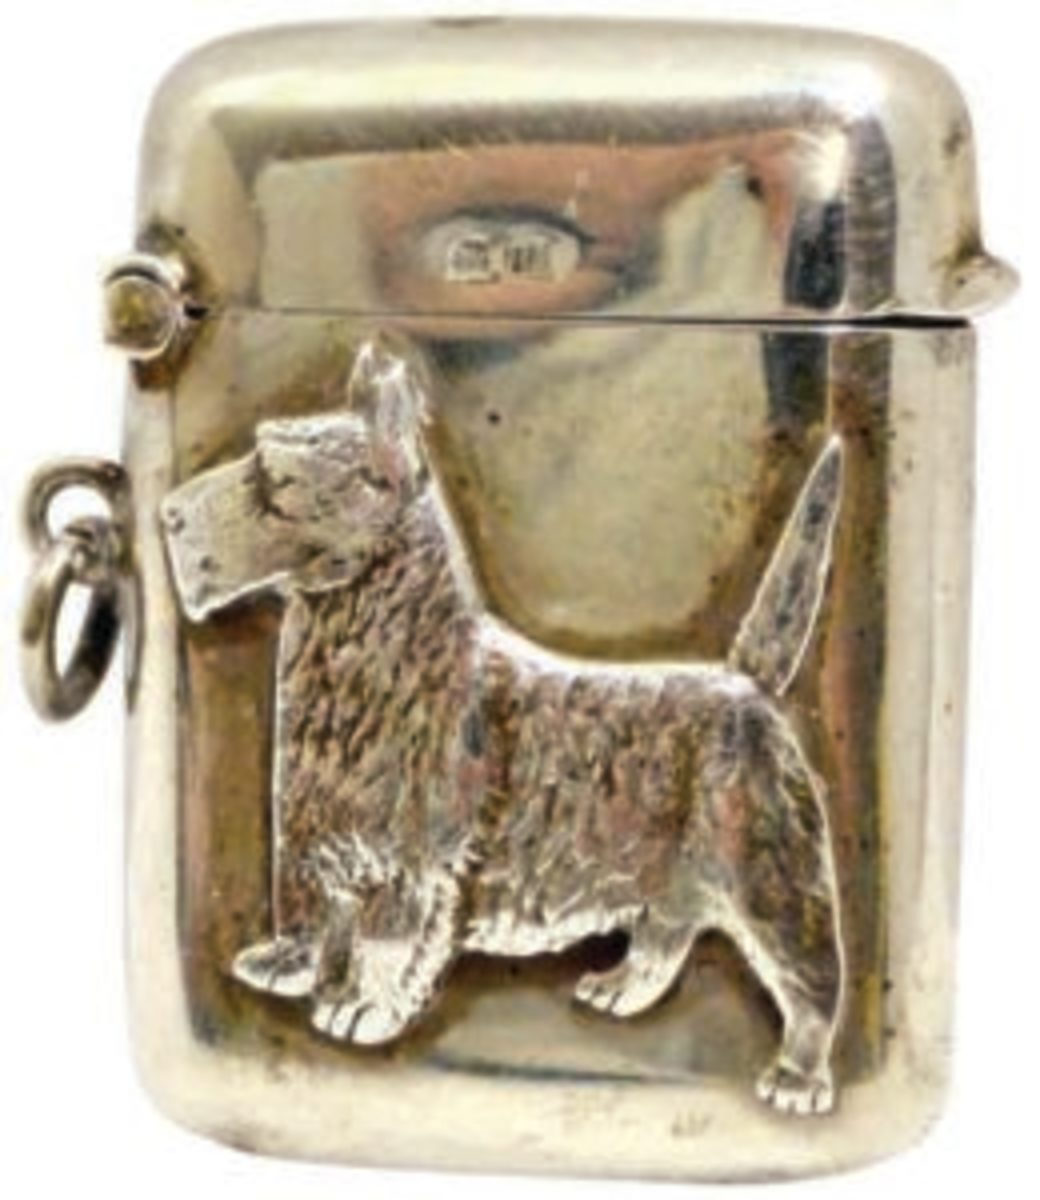 President FDR's dog, Fala, popularized Scottie dogs as collectibles. This sterling silver match safe features a highly detailed relief of one. It was made by Thomas Millward & Co of Birmingham, England, c.1919. Image courtesy of A Dog's Tale Collectibles